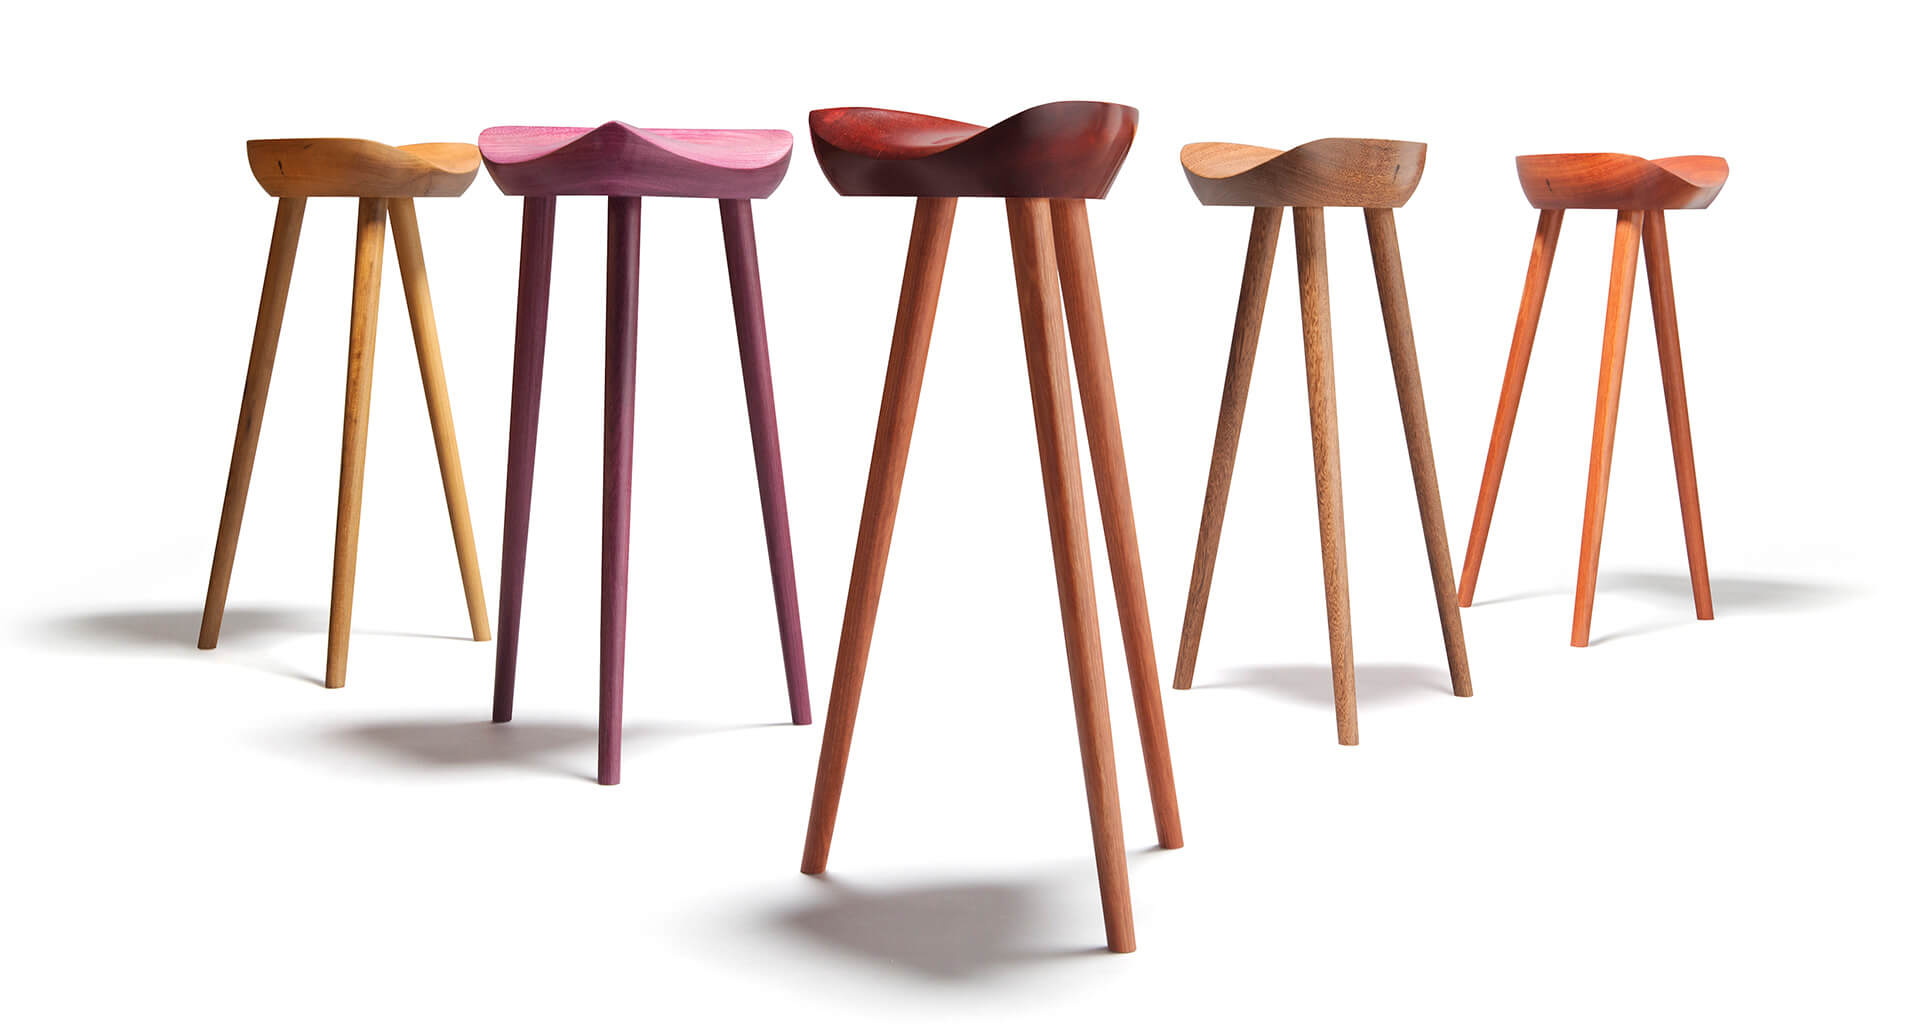 Saddle Stools | Made in Brazil: Curated by Campana Brothers | STIR X Script |STIRworld